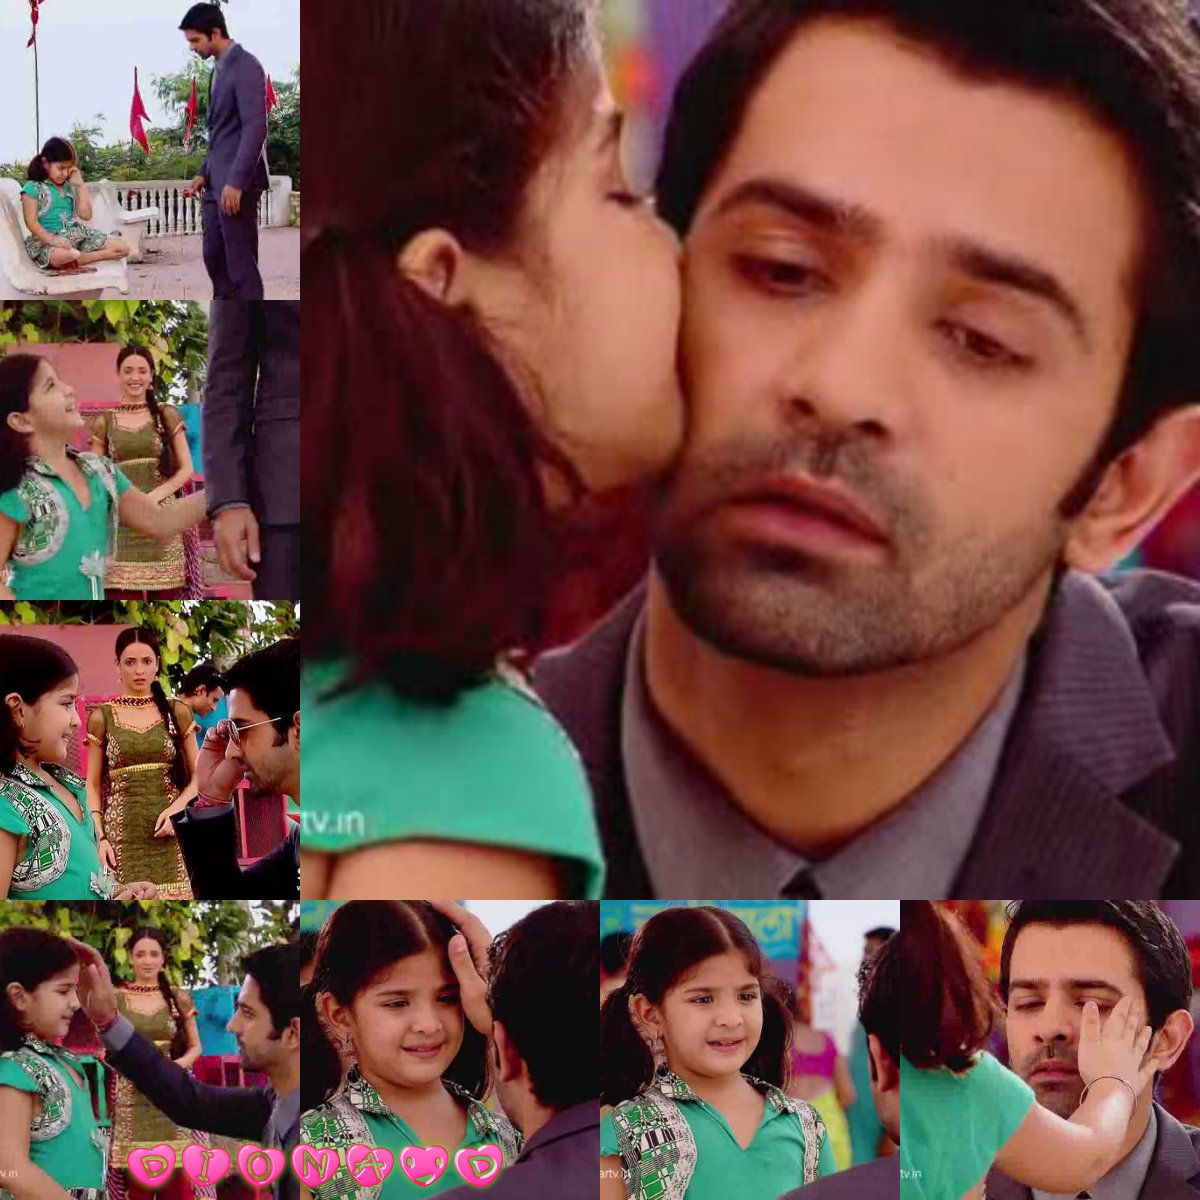 I love this scene its so cute when the girl kissed arnav and